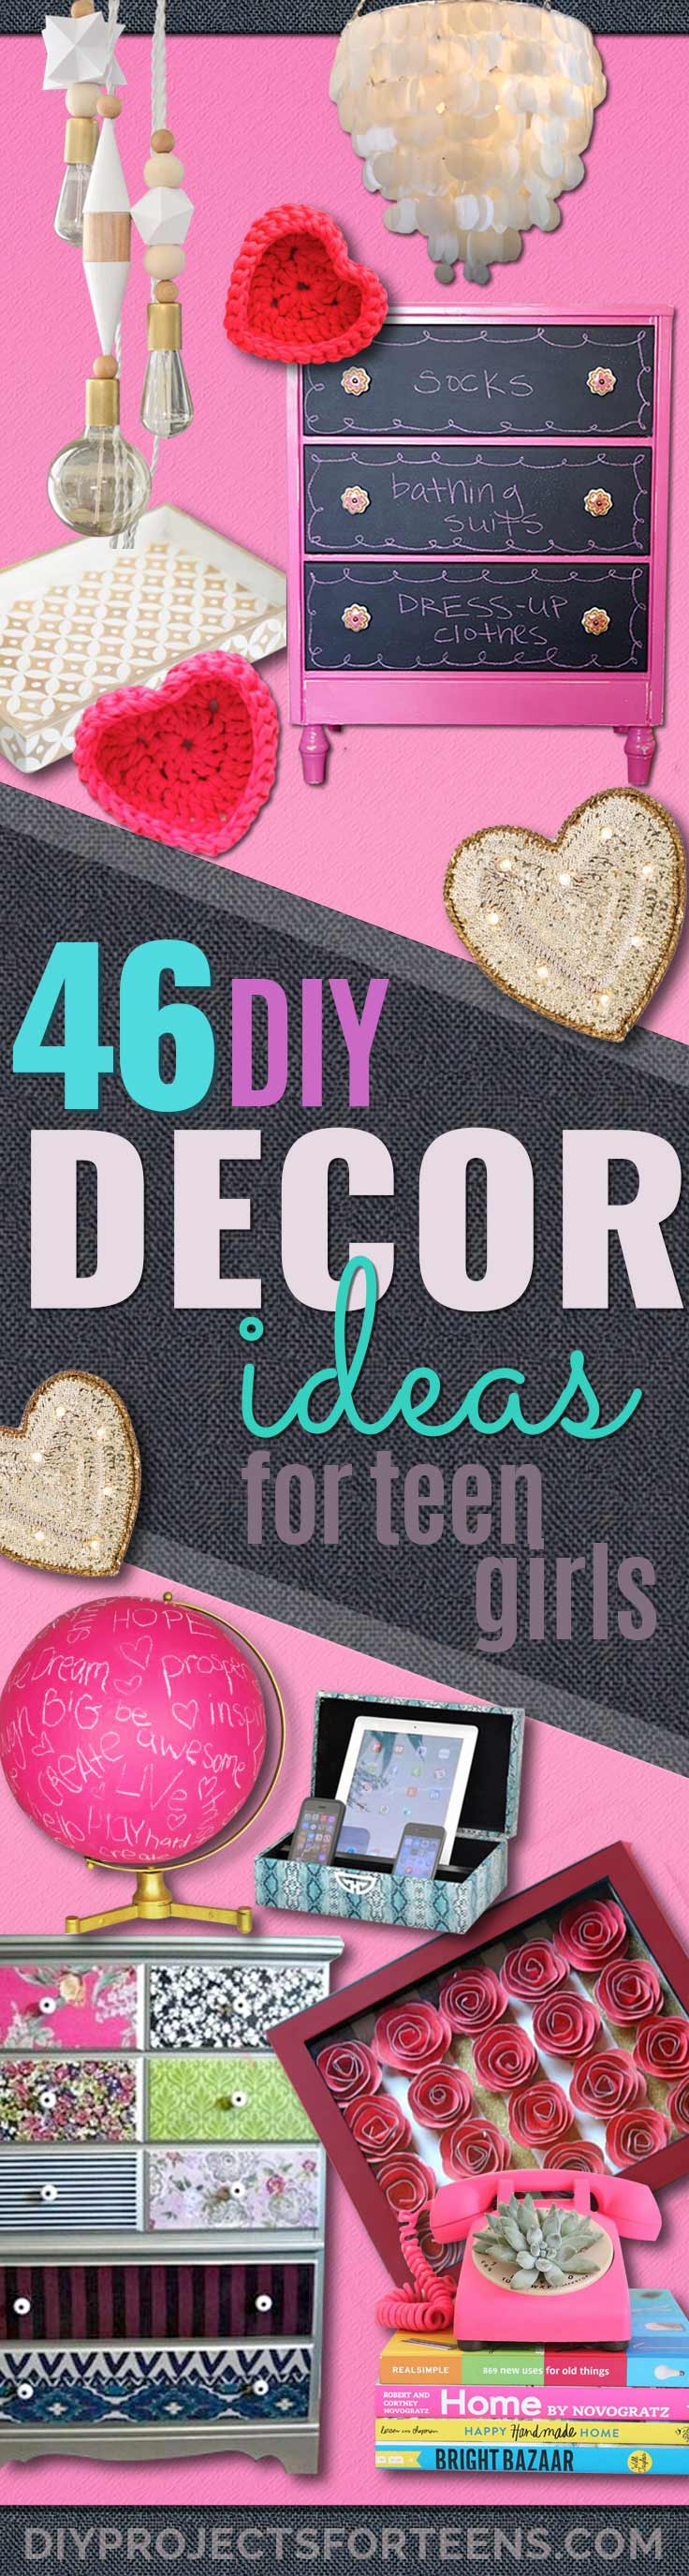 DIY Teen Room Decor Ideas for Girls   Fun Crafts and Decor For Tweens   Cool